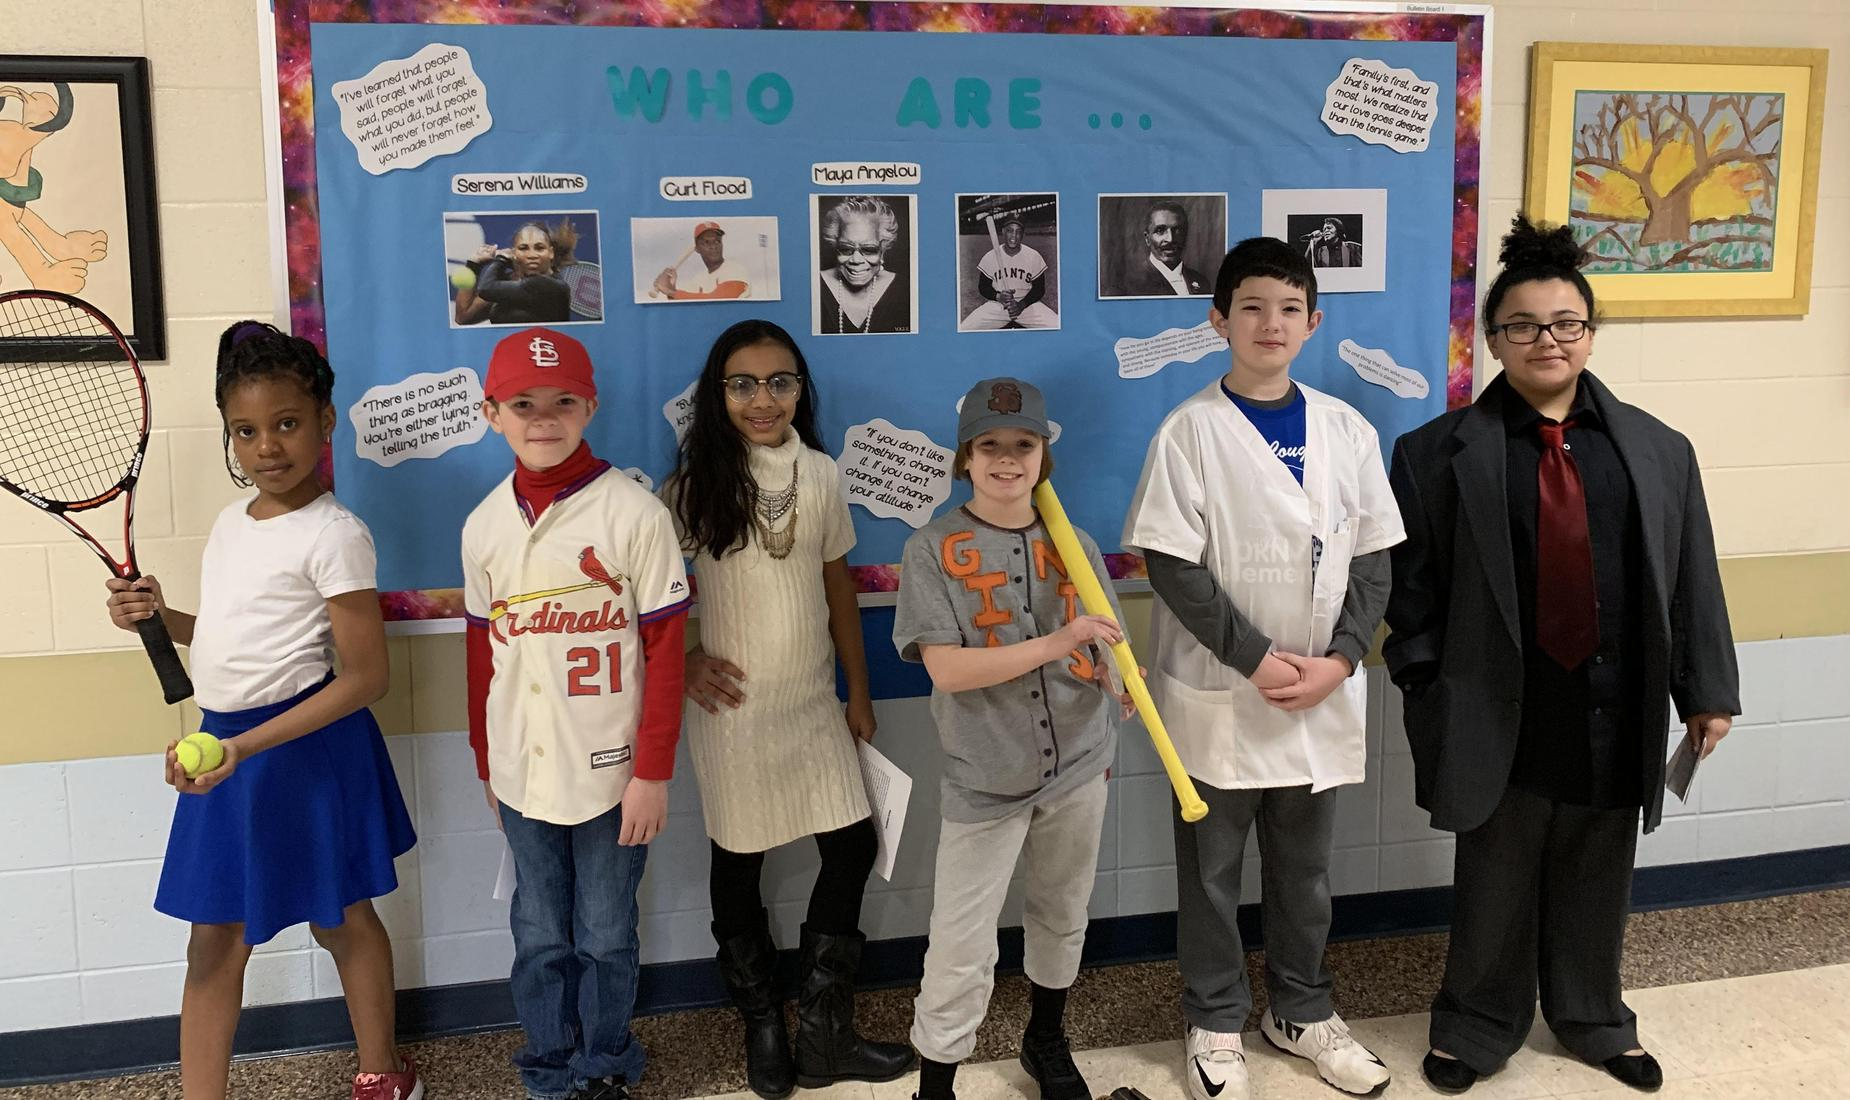 6 students pretending to be wax figures portraying famous Americans: Serena Williams; baseball player Curt Flood; Maya Angelou; Willie Mays; George Washington Carver; and James Brown.